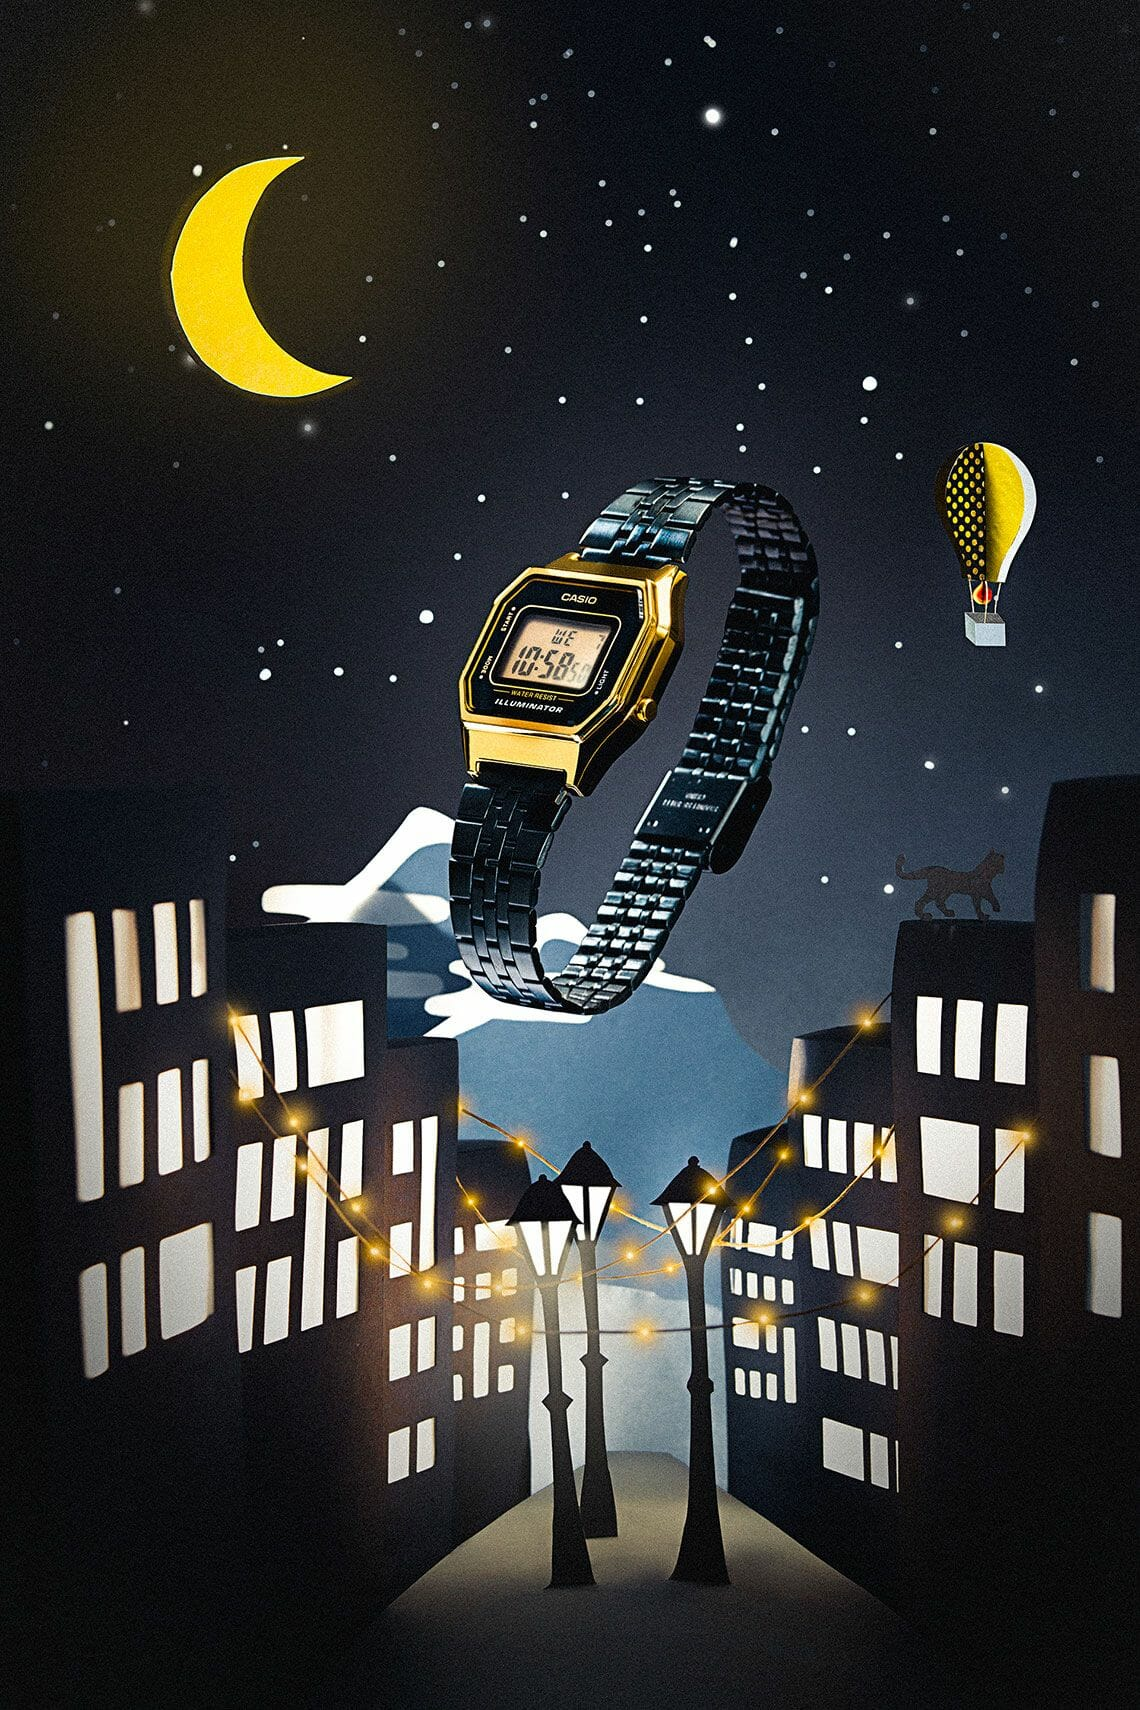 Shooting photo - Casio Illuminator